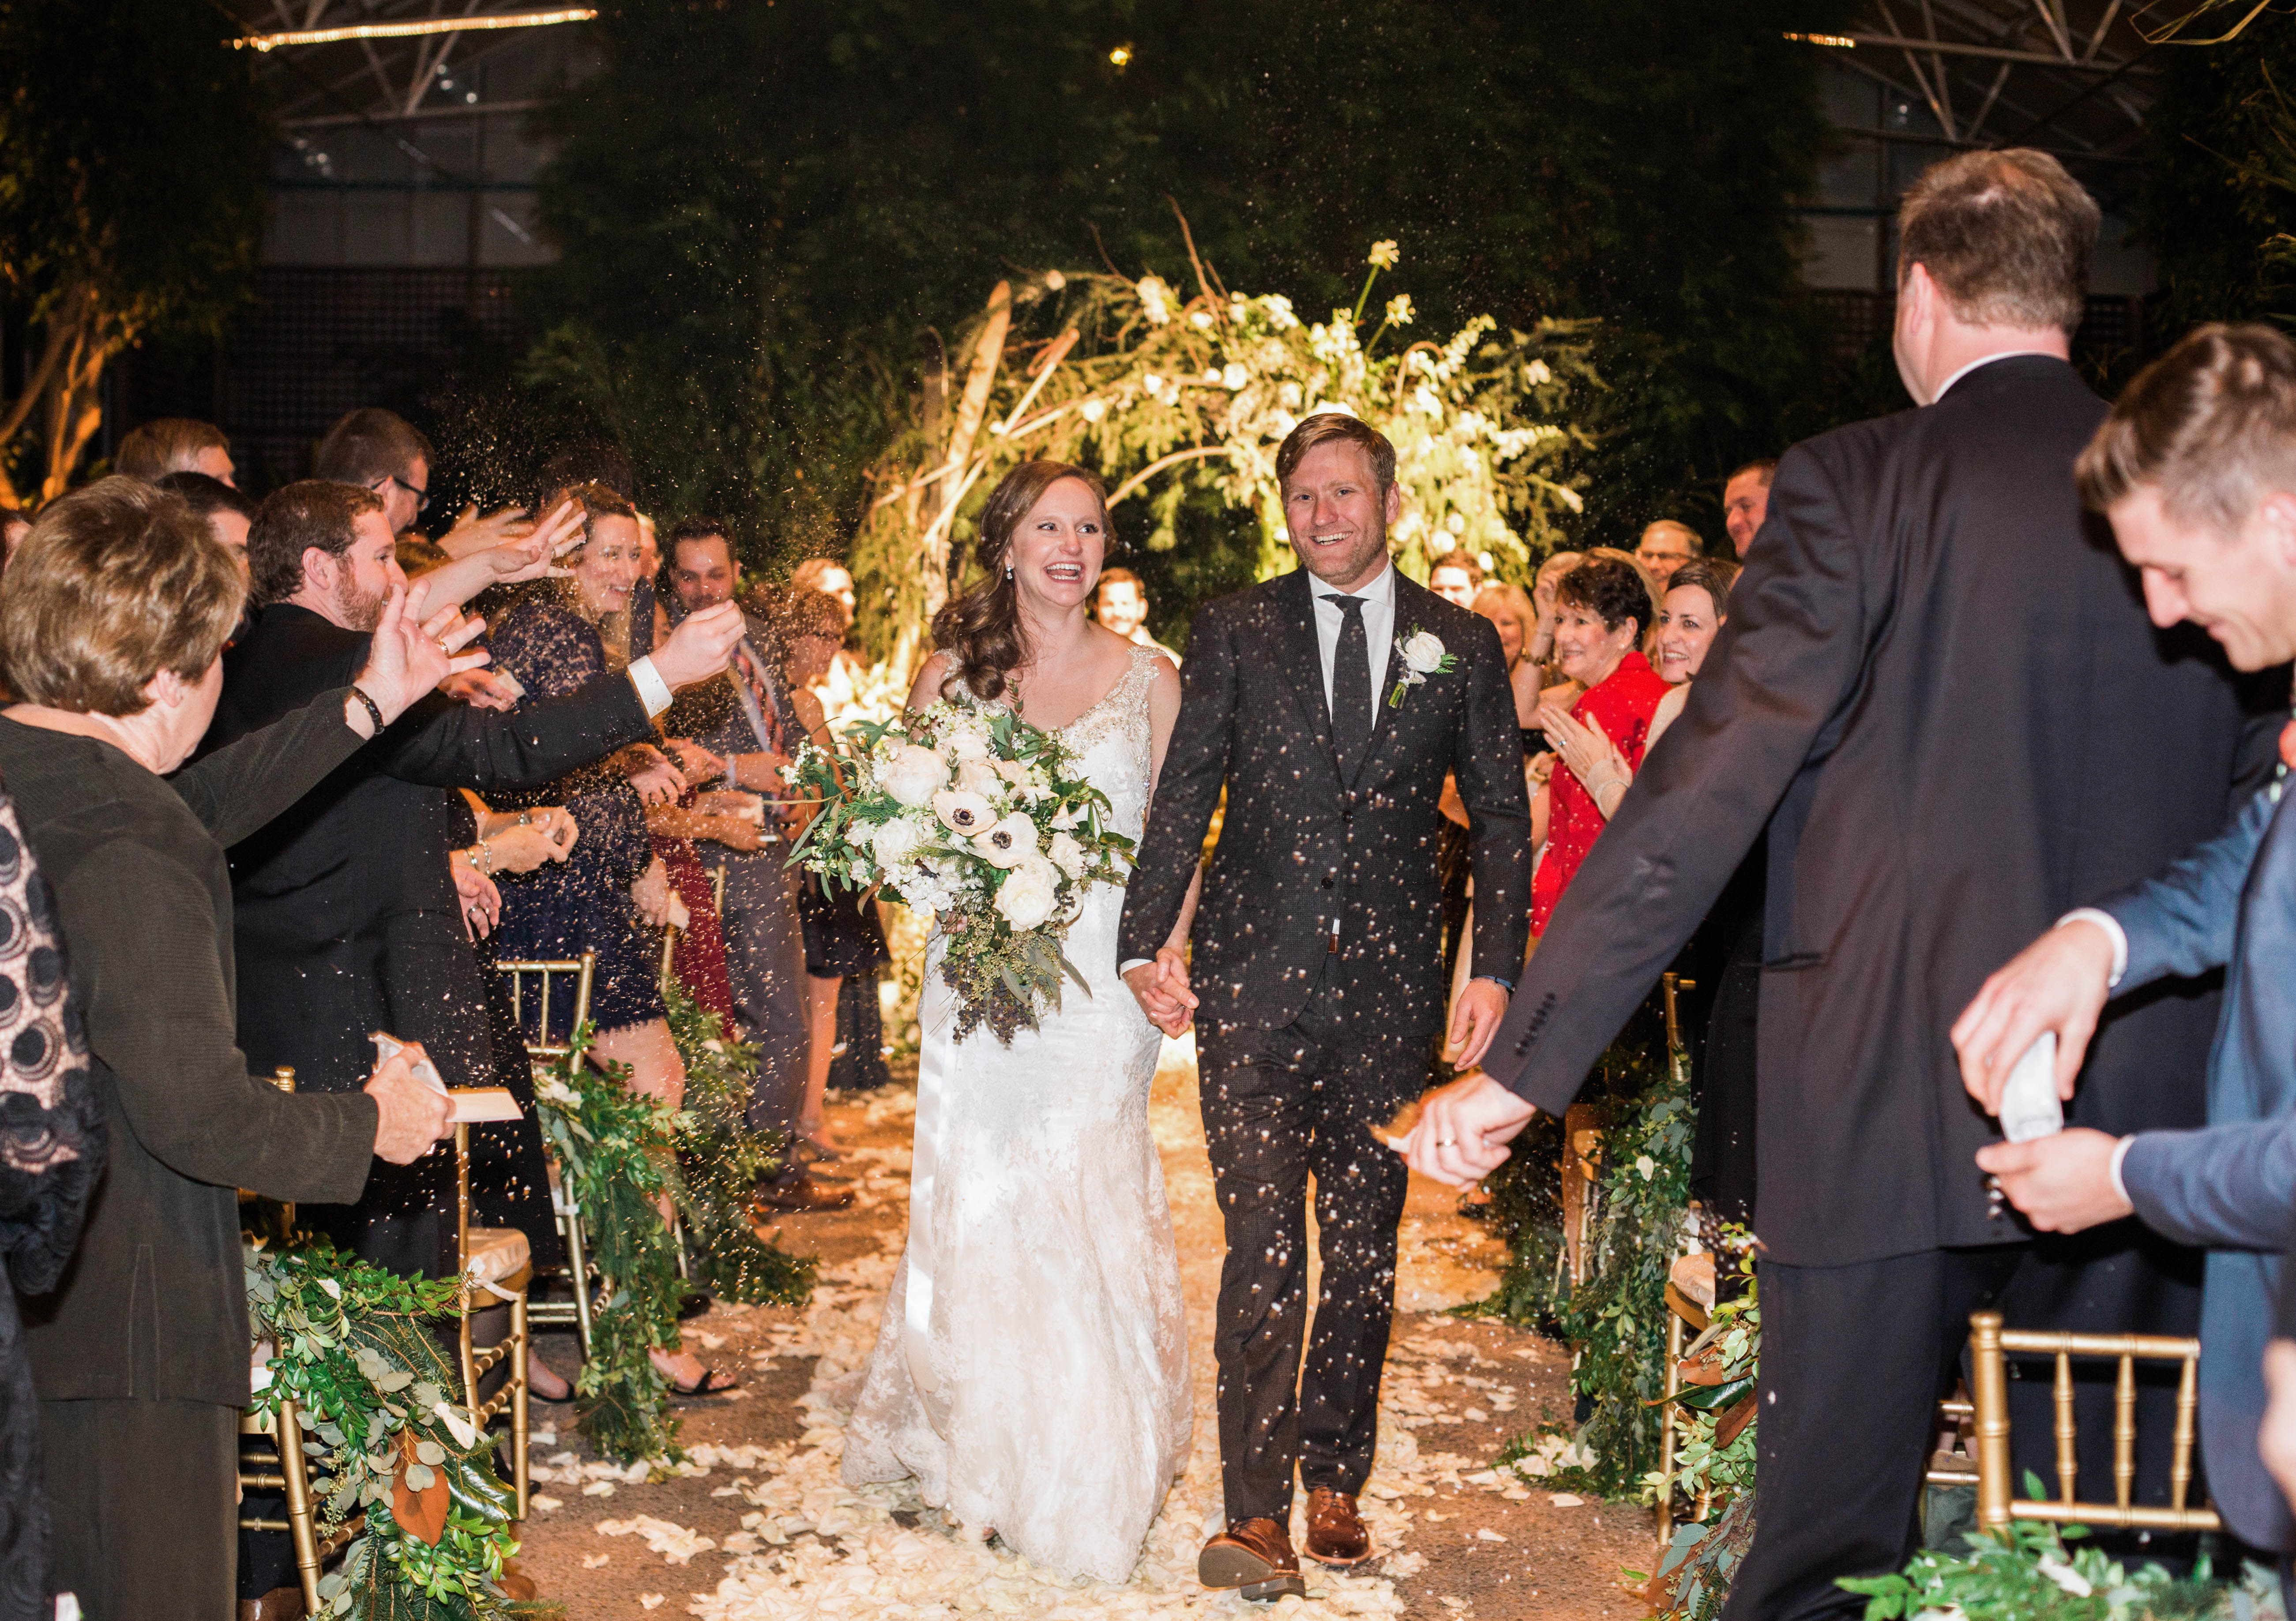 wedding recessional bride groom hold hands guests applaud